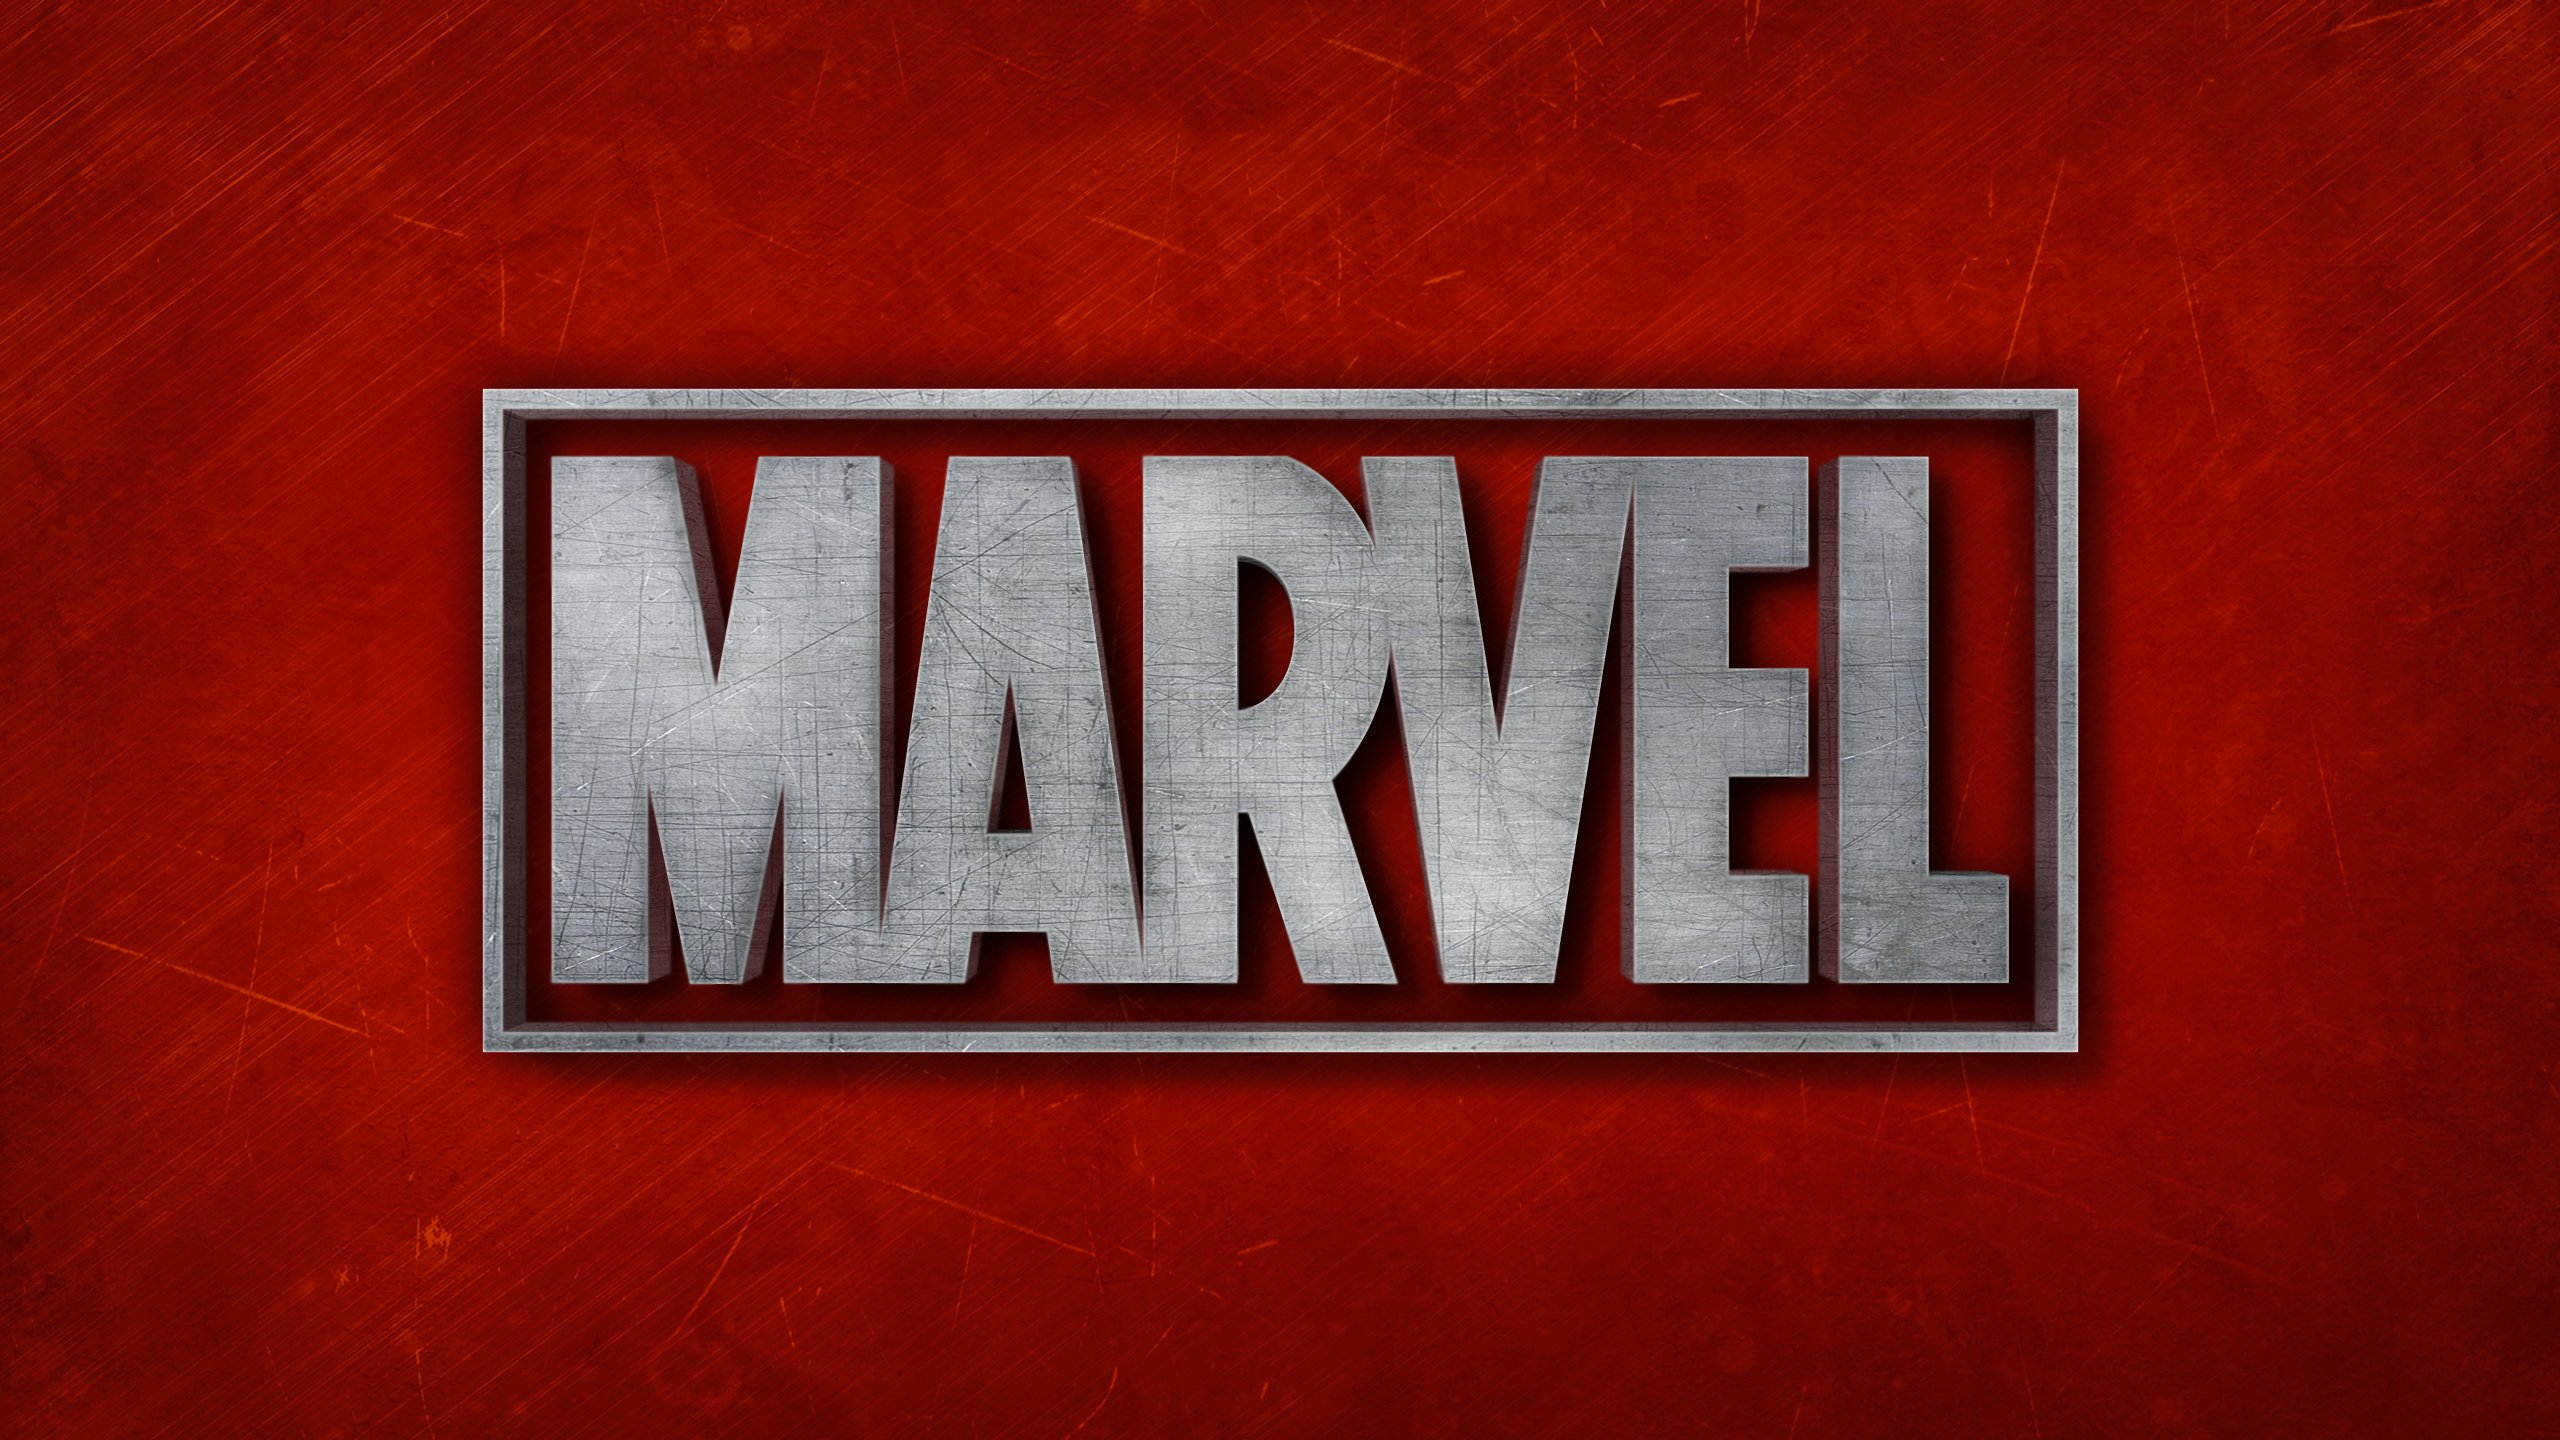 Marvel comic logo book wallpaper 2560x1440 521987 2560x1440